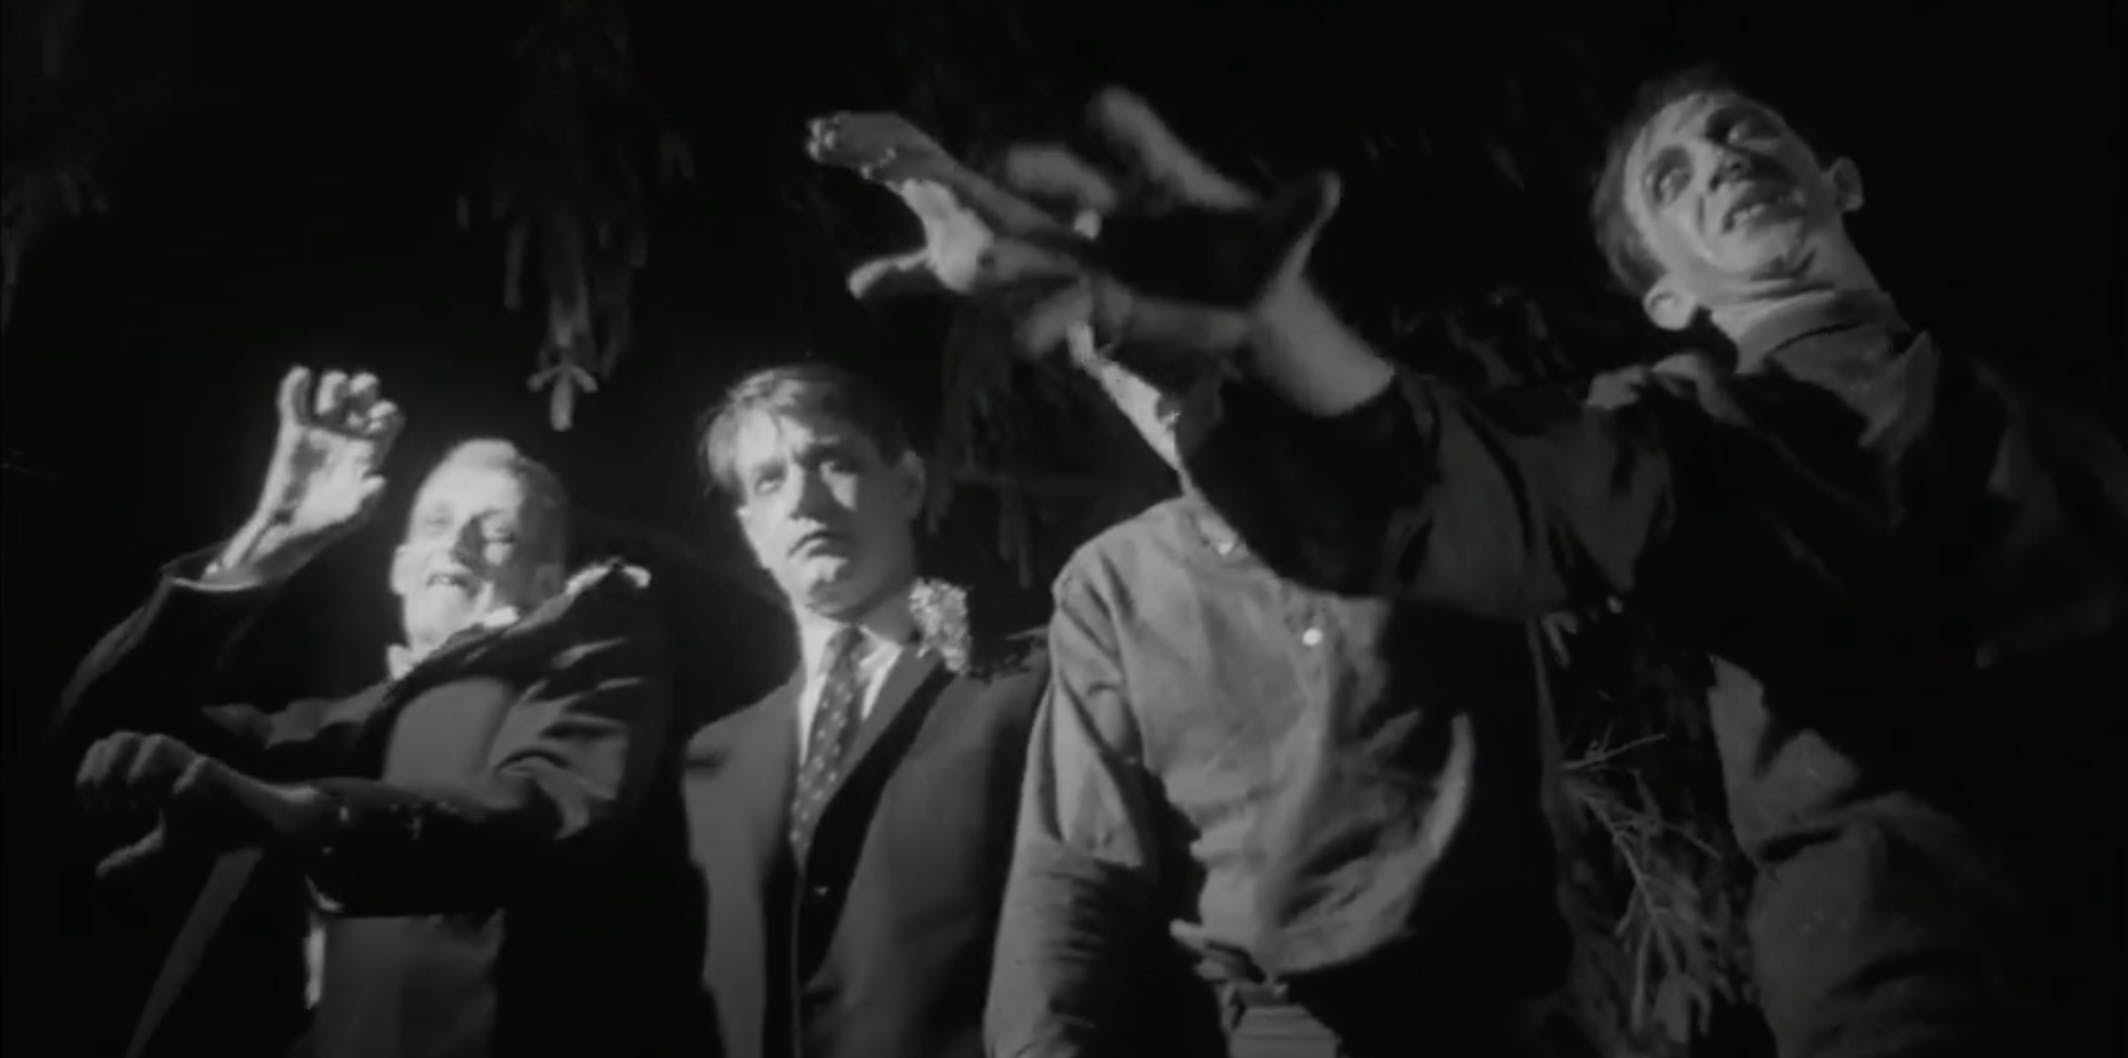 good classic movies on amazon prime : night of the living dead